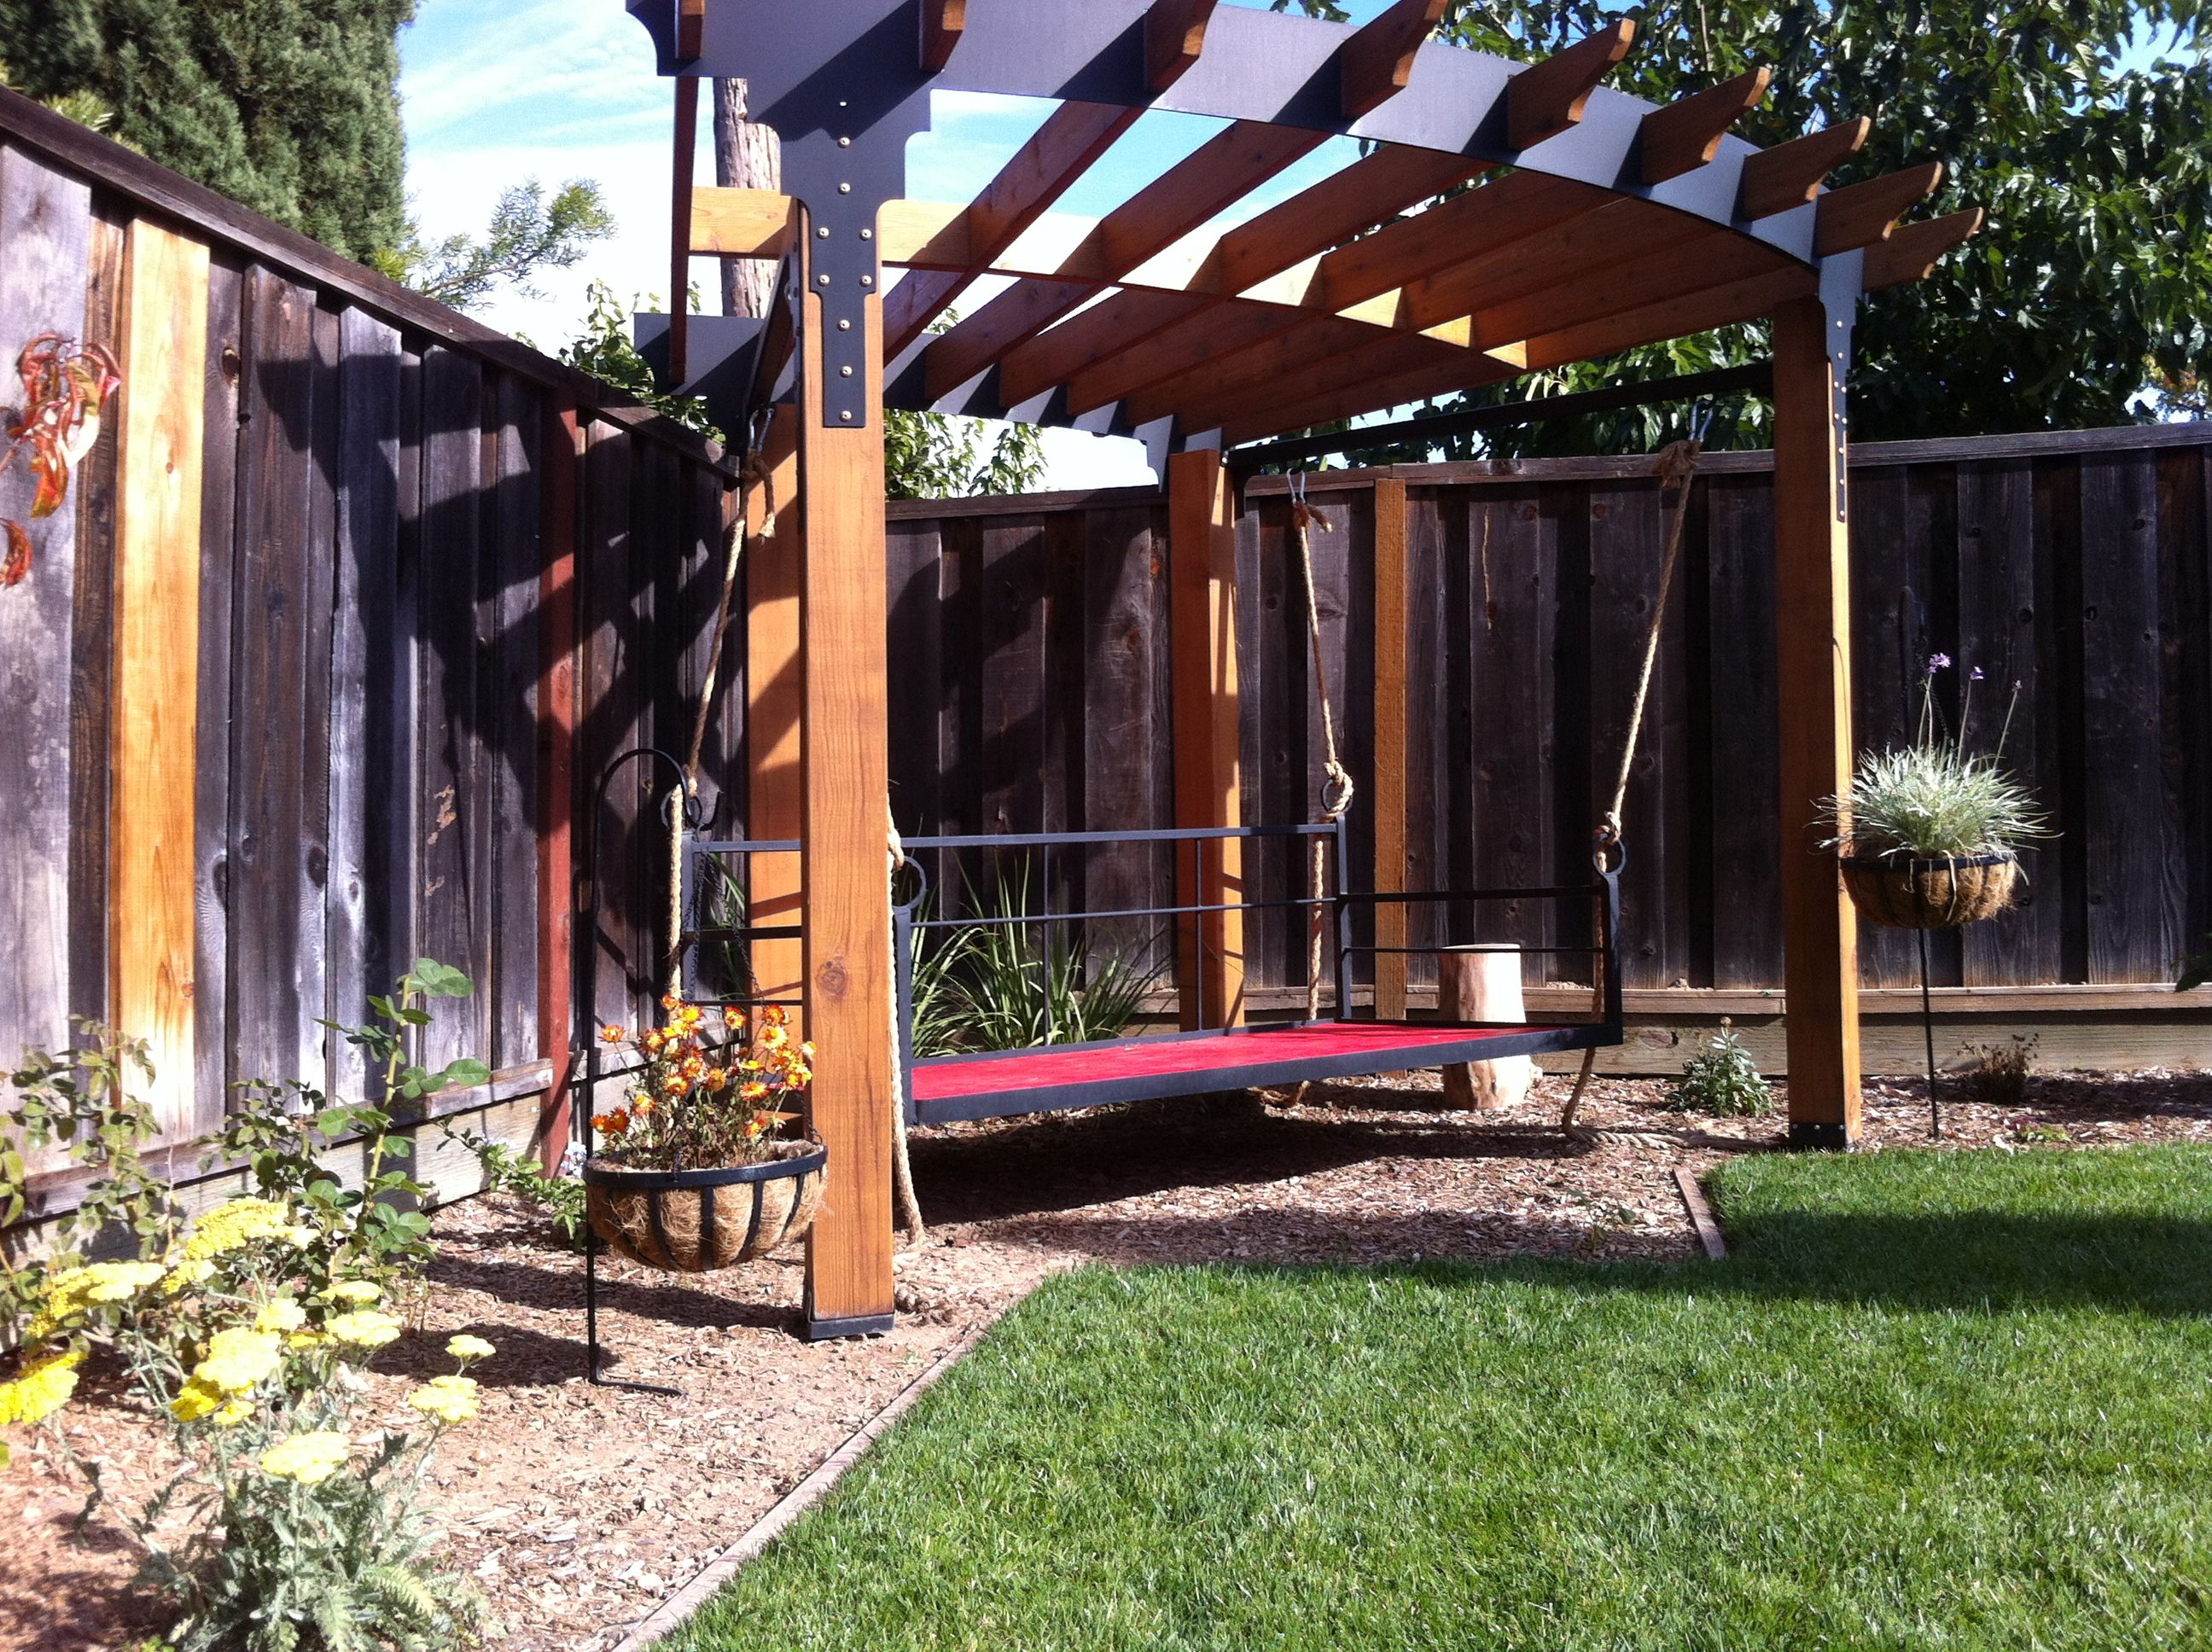 Trapezoid Gazebo Pergola With A Hanging Day Bed Fits Nicely In The Corner Of A Yard The Hanging Bed Will Get An Twi Backyard Pergola Pergola Gazebo Pergola